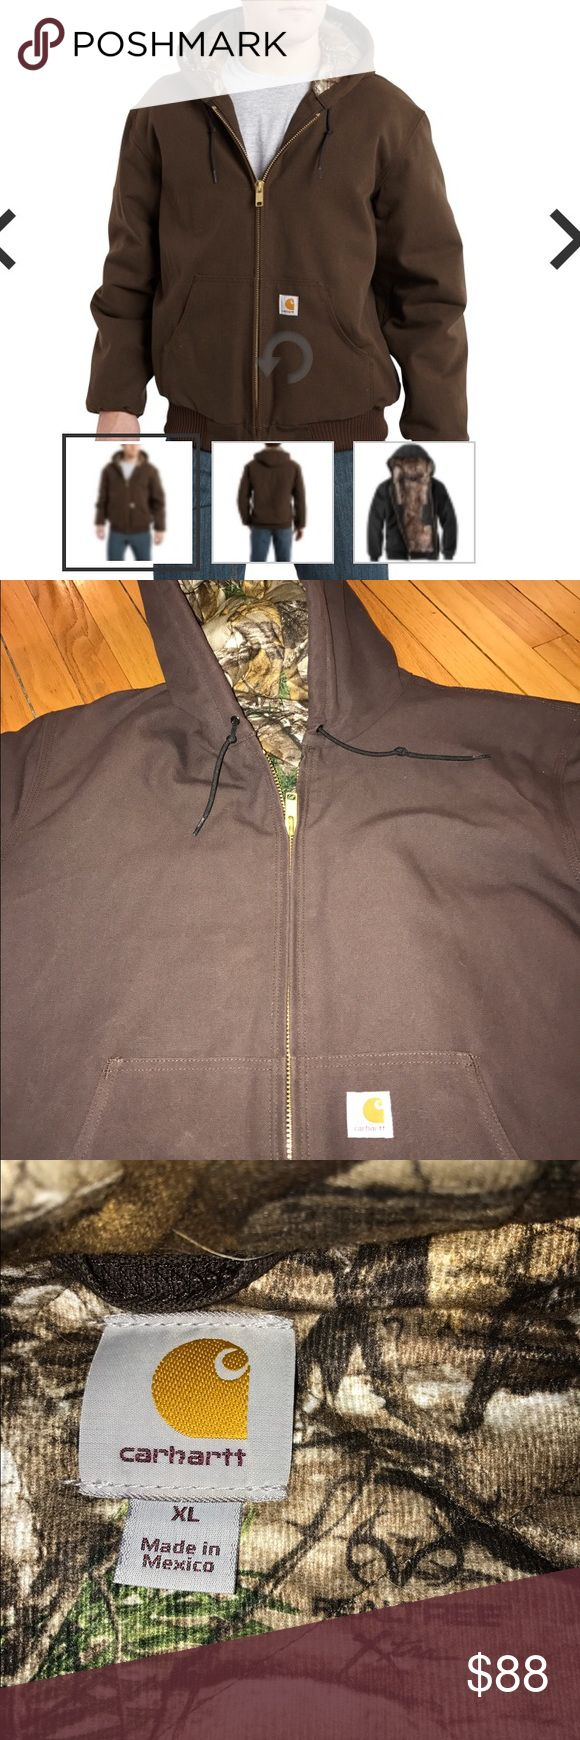 NWOT Carhartt Men's Huntsman Active Jac:Dark Brown NWOT Carhart Huntsman Active Jac: Dark Brown. STYLE #101074. Size XL. Never worn; but no tags. Men's washed duck, flannel lining. 12-ounce, 100% washed duck. Quilted-flannel lining with camouflage Real Tree pattern in body. Attached quilted-flannel lined hood with draw-cord closure. Two inside pockets. Left inside deep pocket. Right inside pocket has zipper. Two large lower-front pockets. Rib-knit cuffs and waistband. Carhartt Jackets…